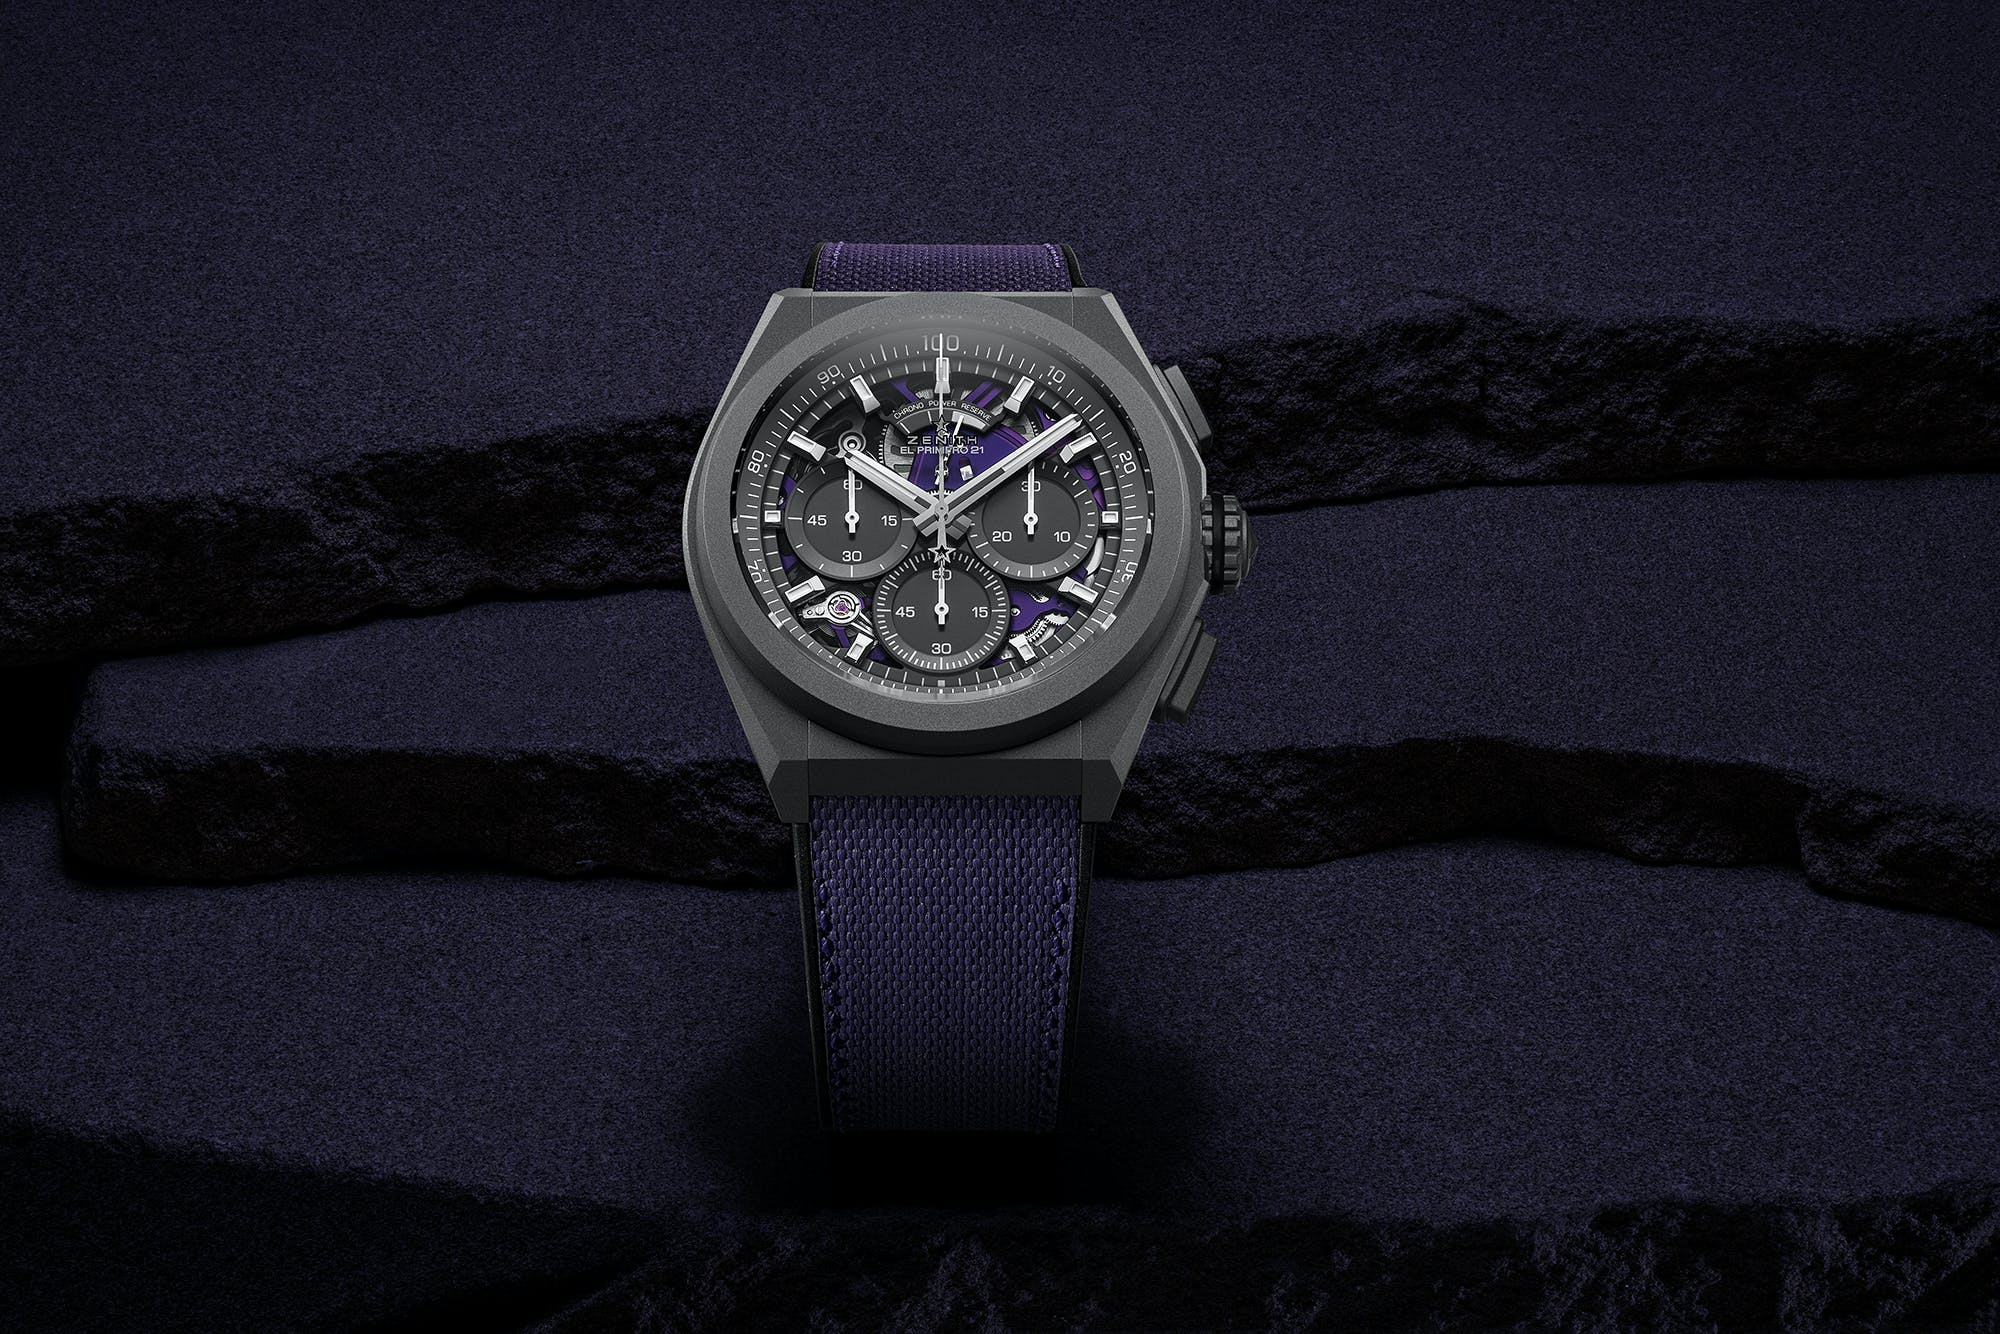 ZENITH EXPLORES A NEW SPECTRUM OF COLOUR WITH THE FIRST VIOLET CHRONOGRAPH MOVEMENT: DEFY 21 ULTRAVIOLET